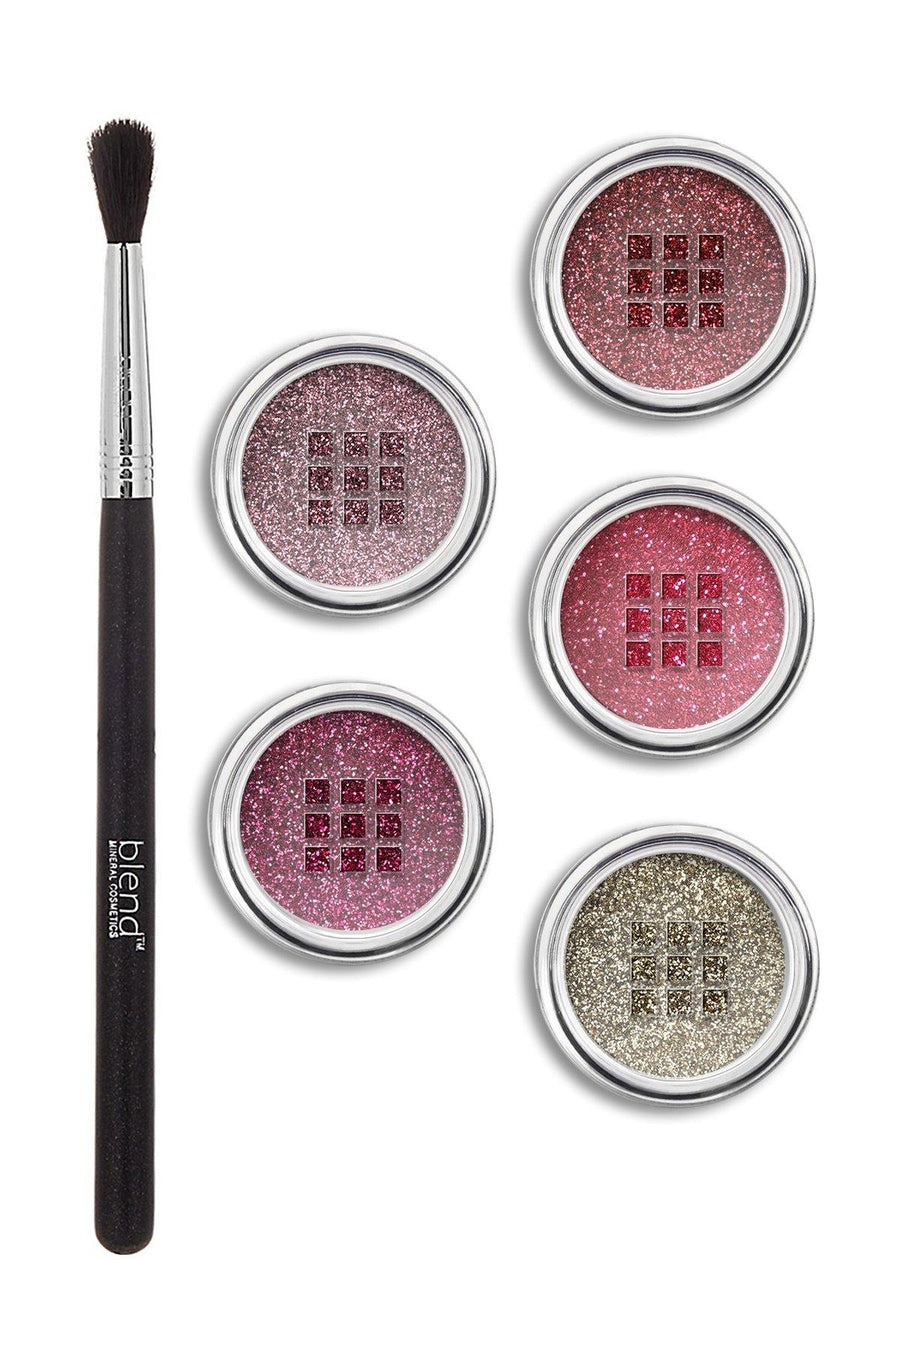 Rose Glitter Bundle - Blend Mineral Cosmetics